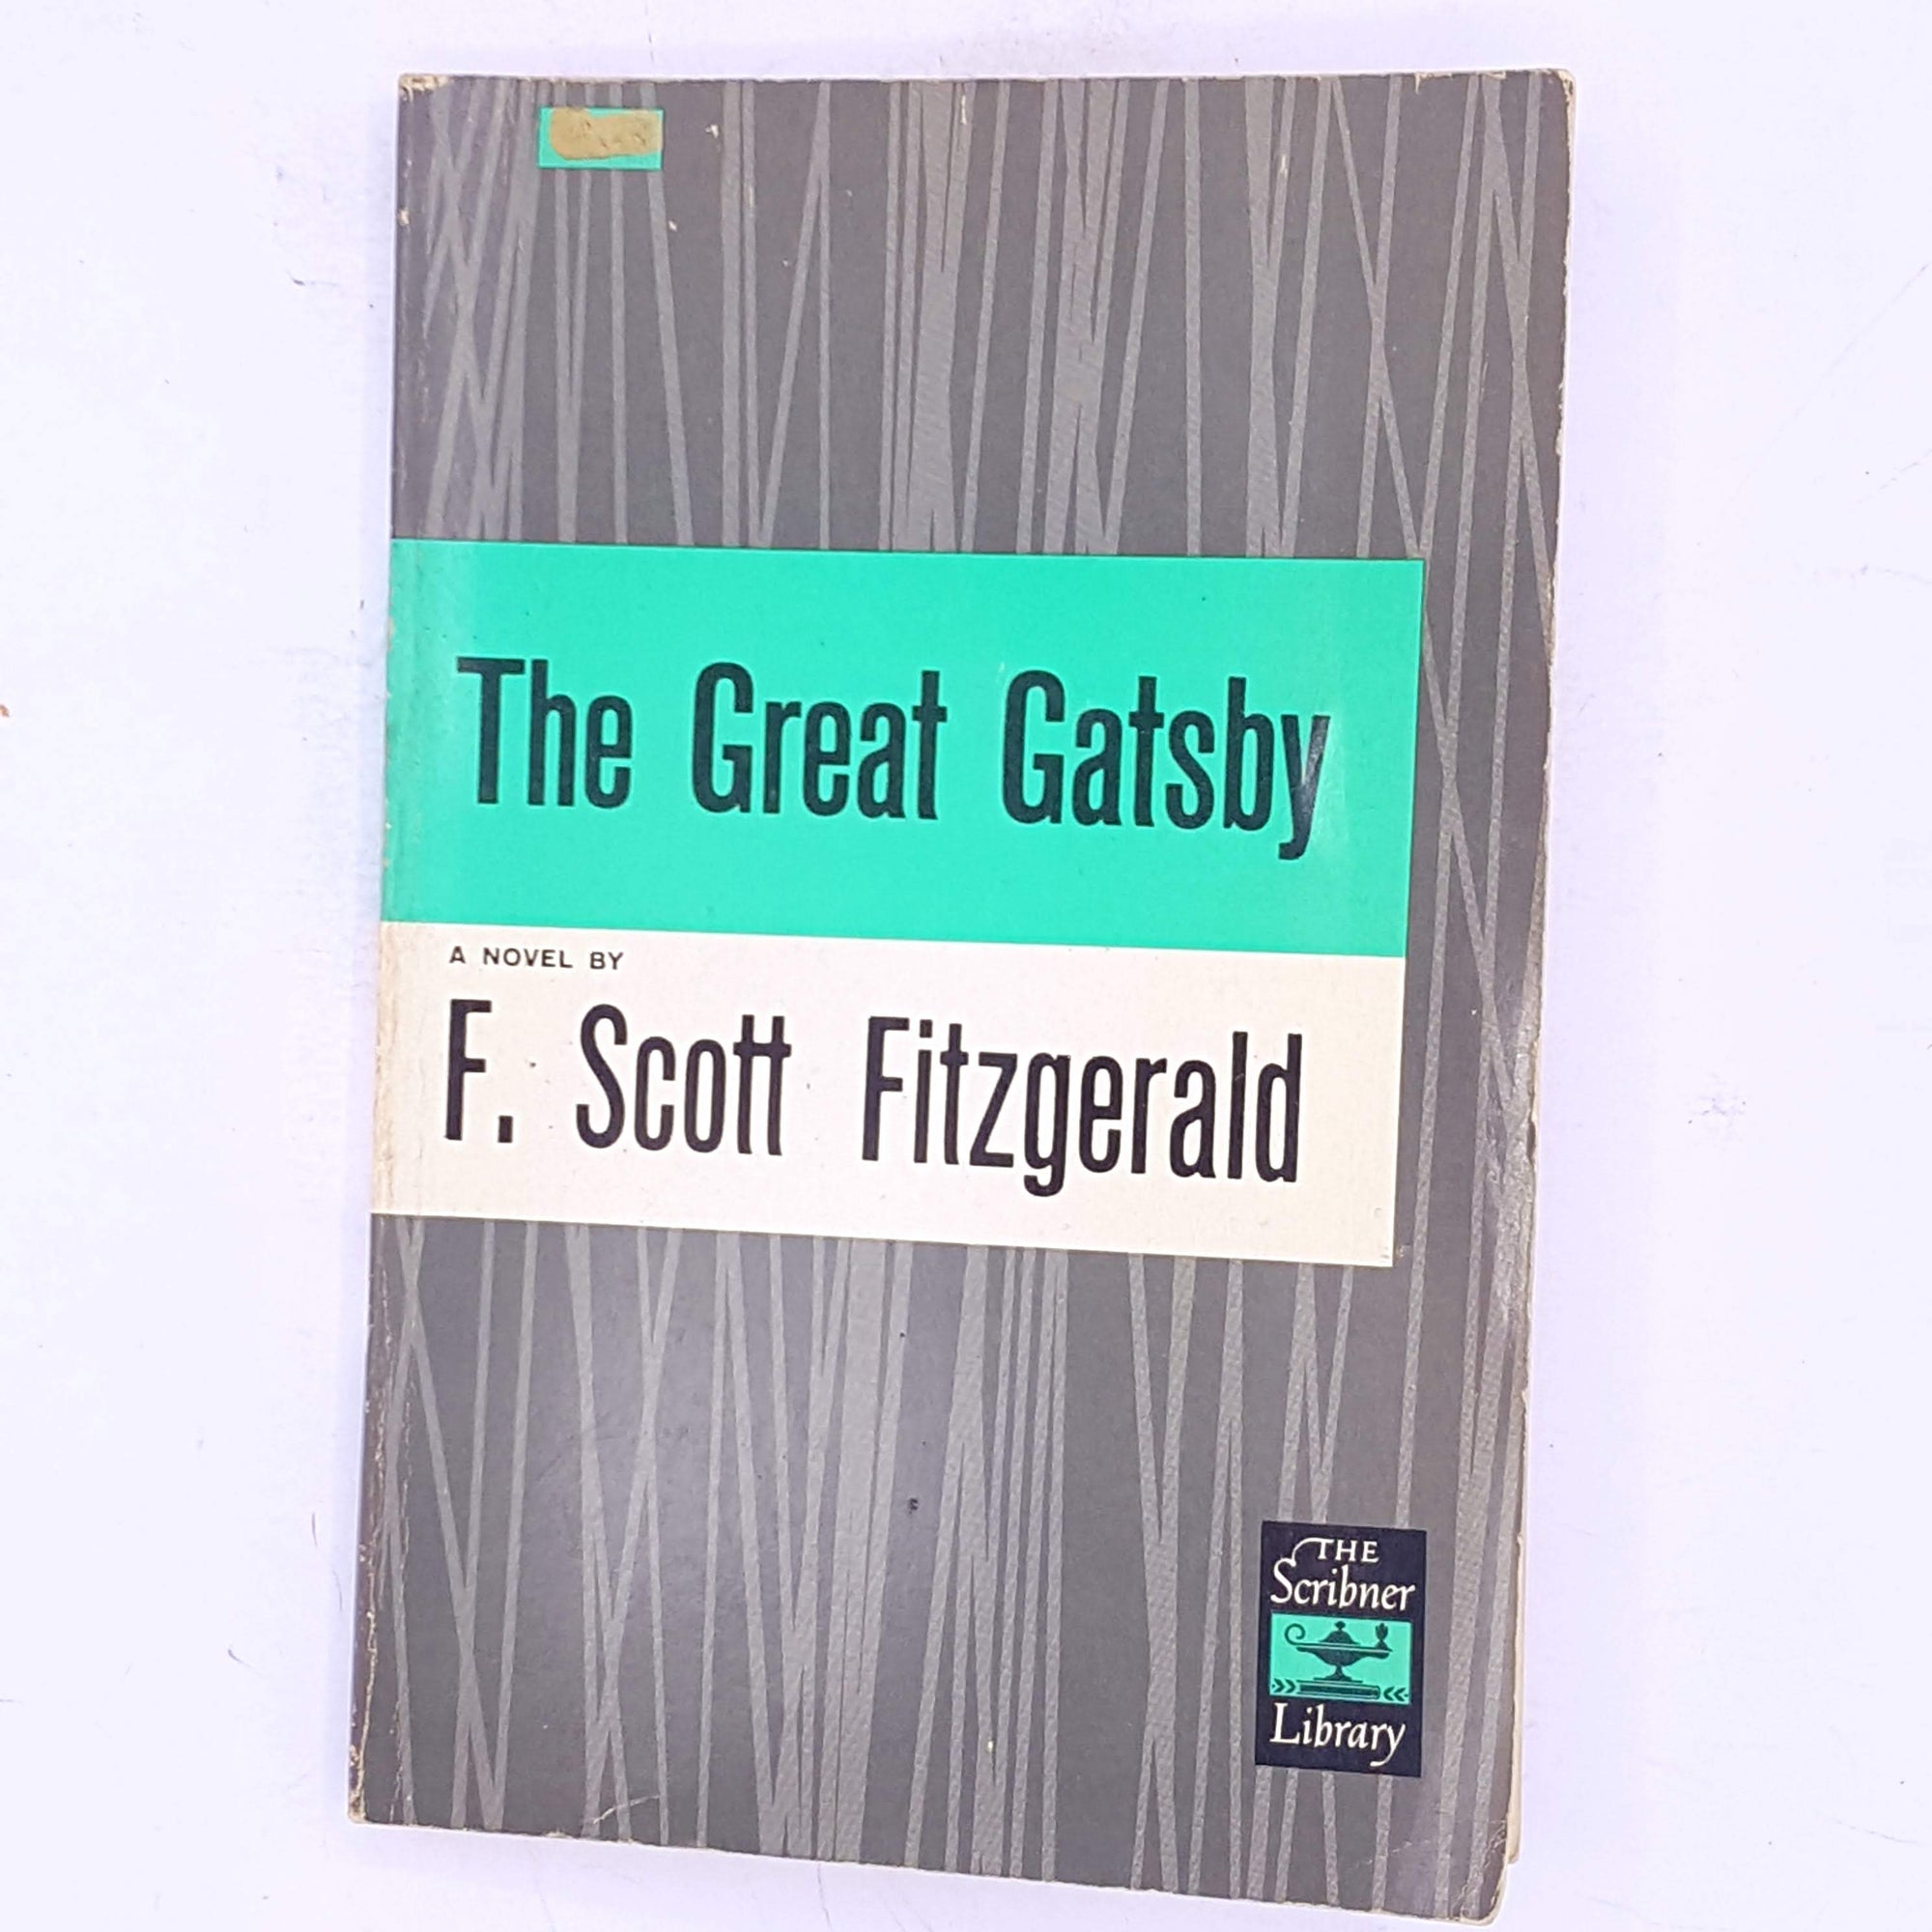 The Great Gatsby a novel by F. Scott Fitzgerald